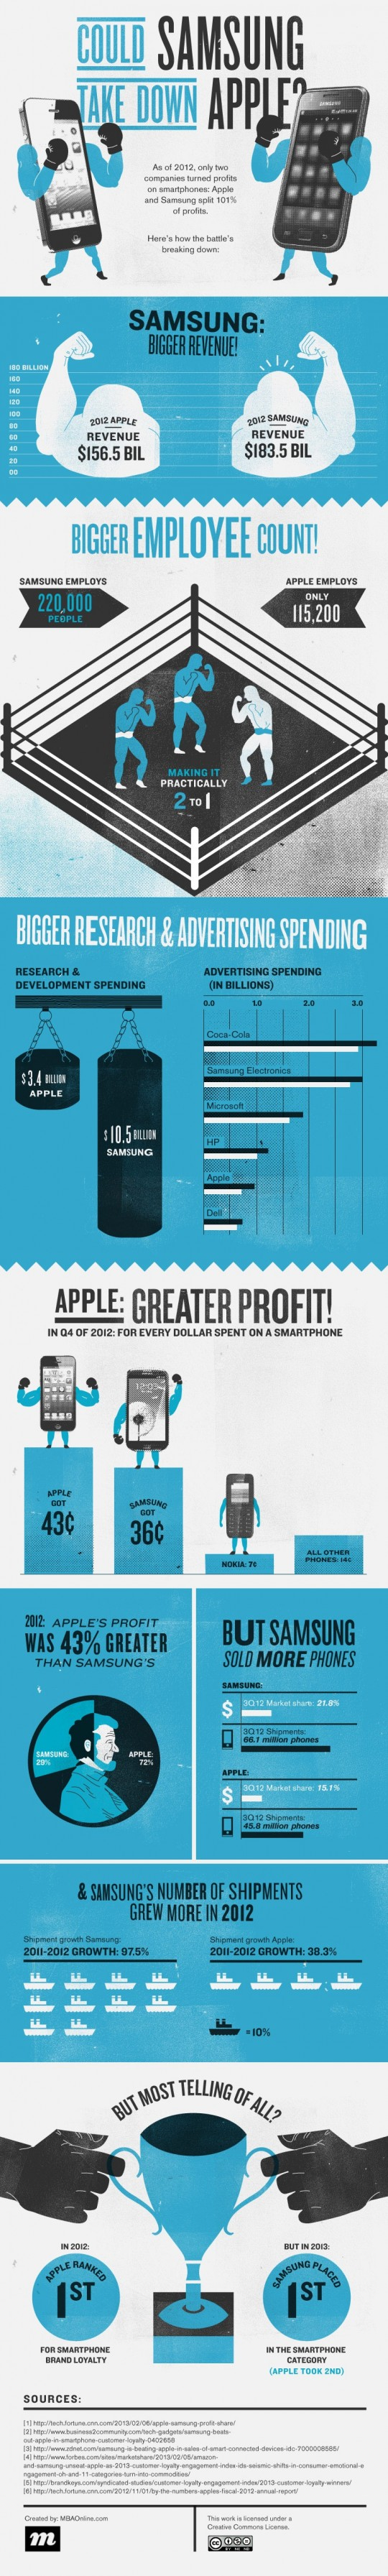 samsung_vs_apple_2